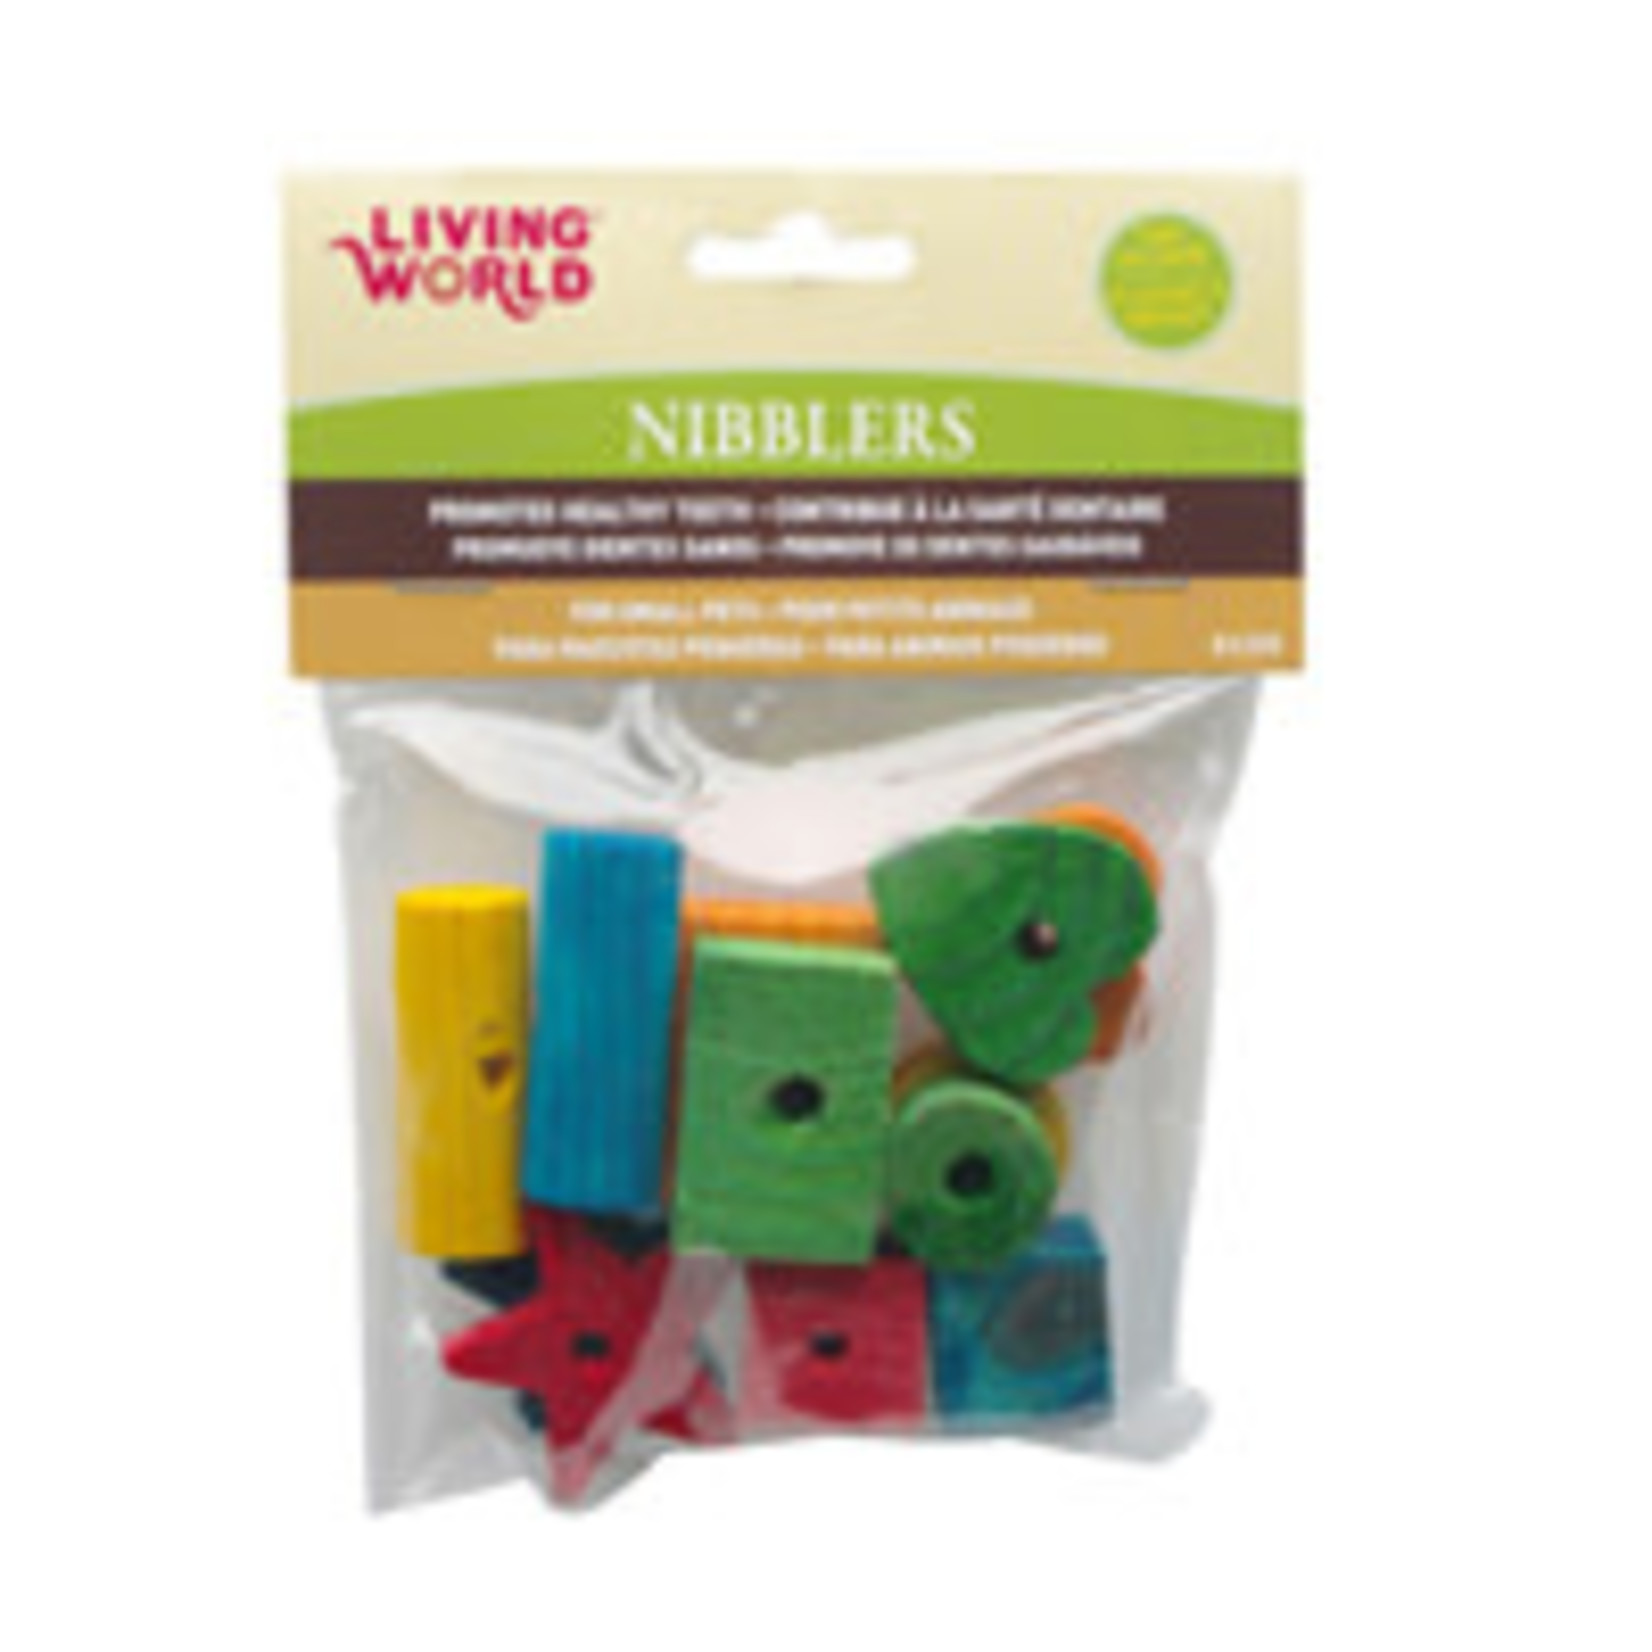 LW Nibblers Wood Chew Toys